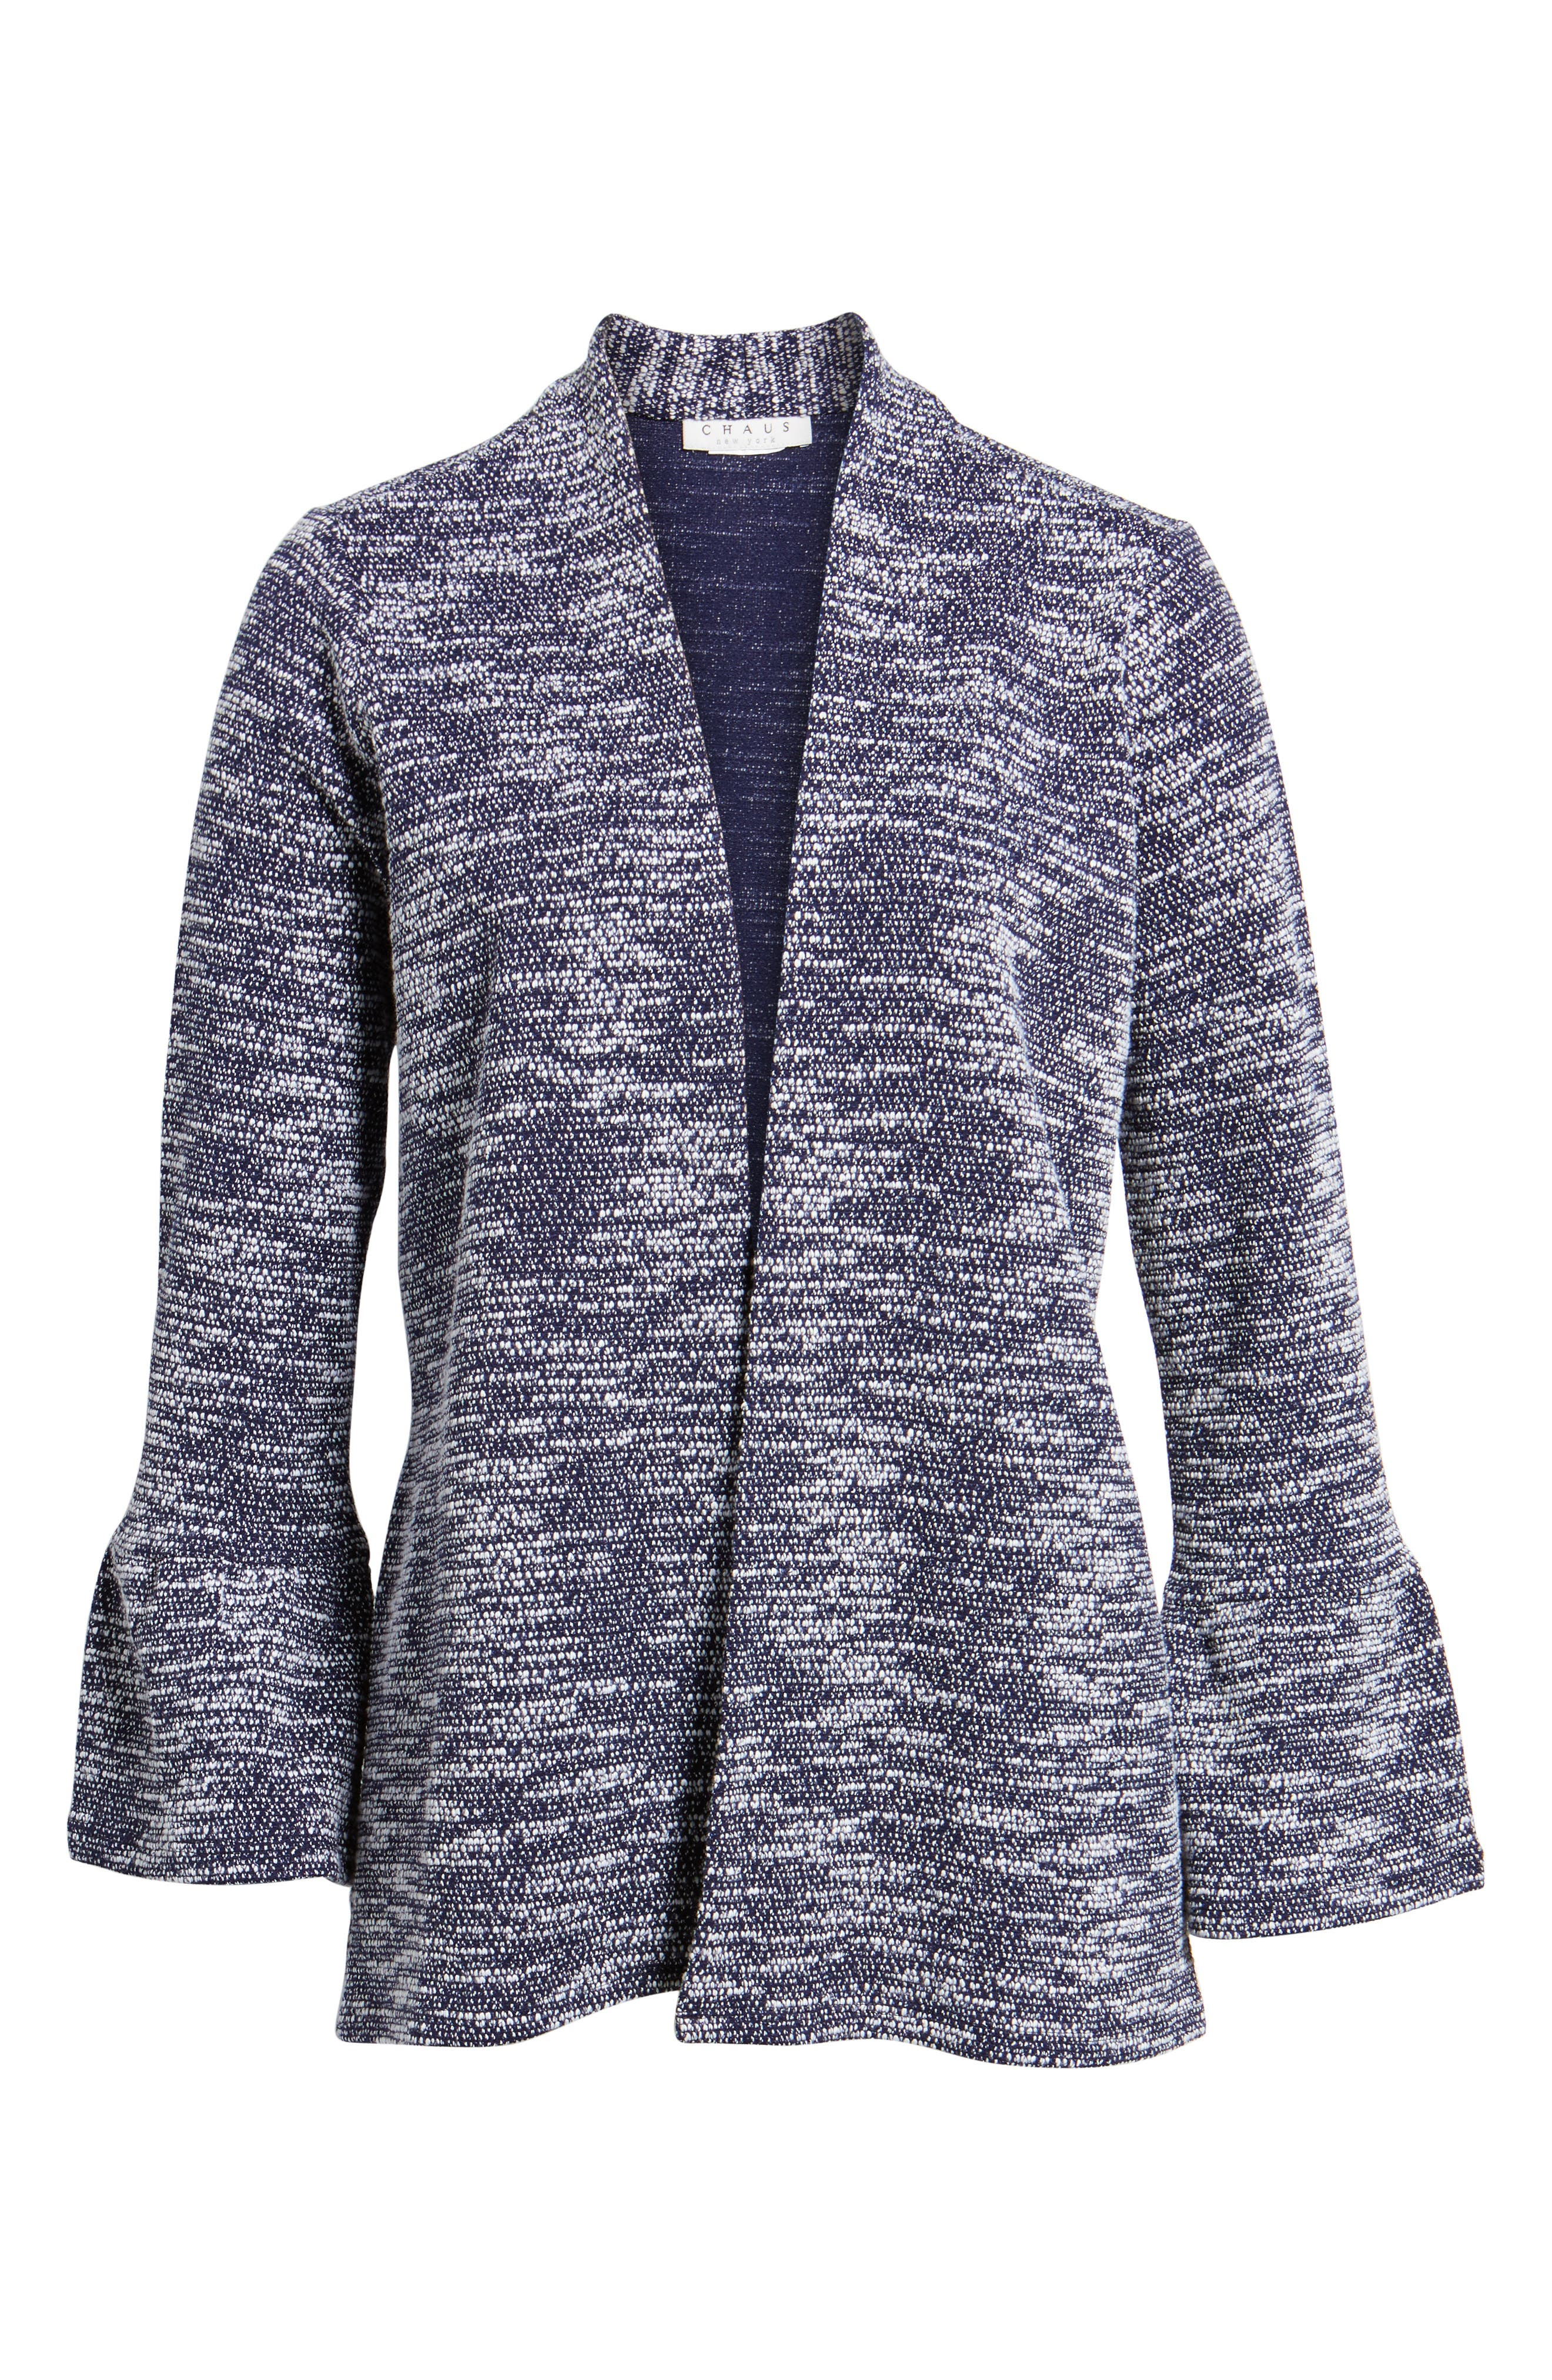 Bell Cuff Textured Cardigan,                             Alternate thumbnail 6, color,                             529-Evening Navy